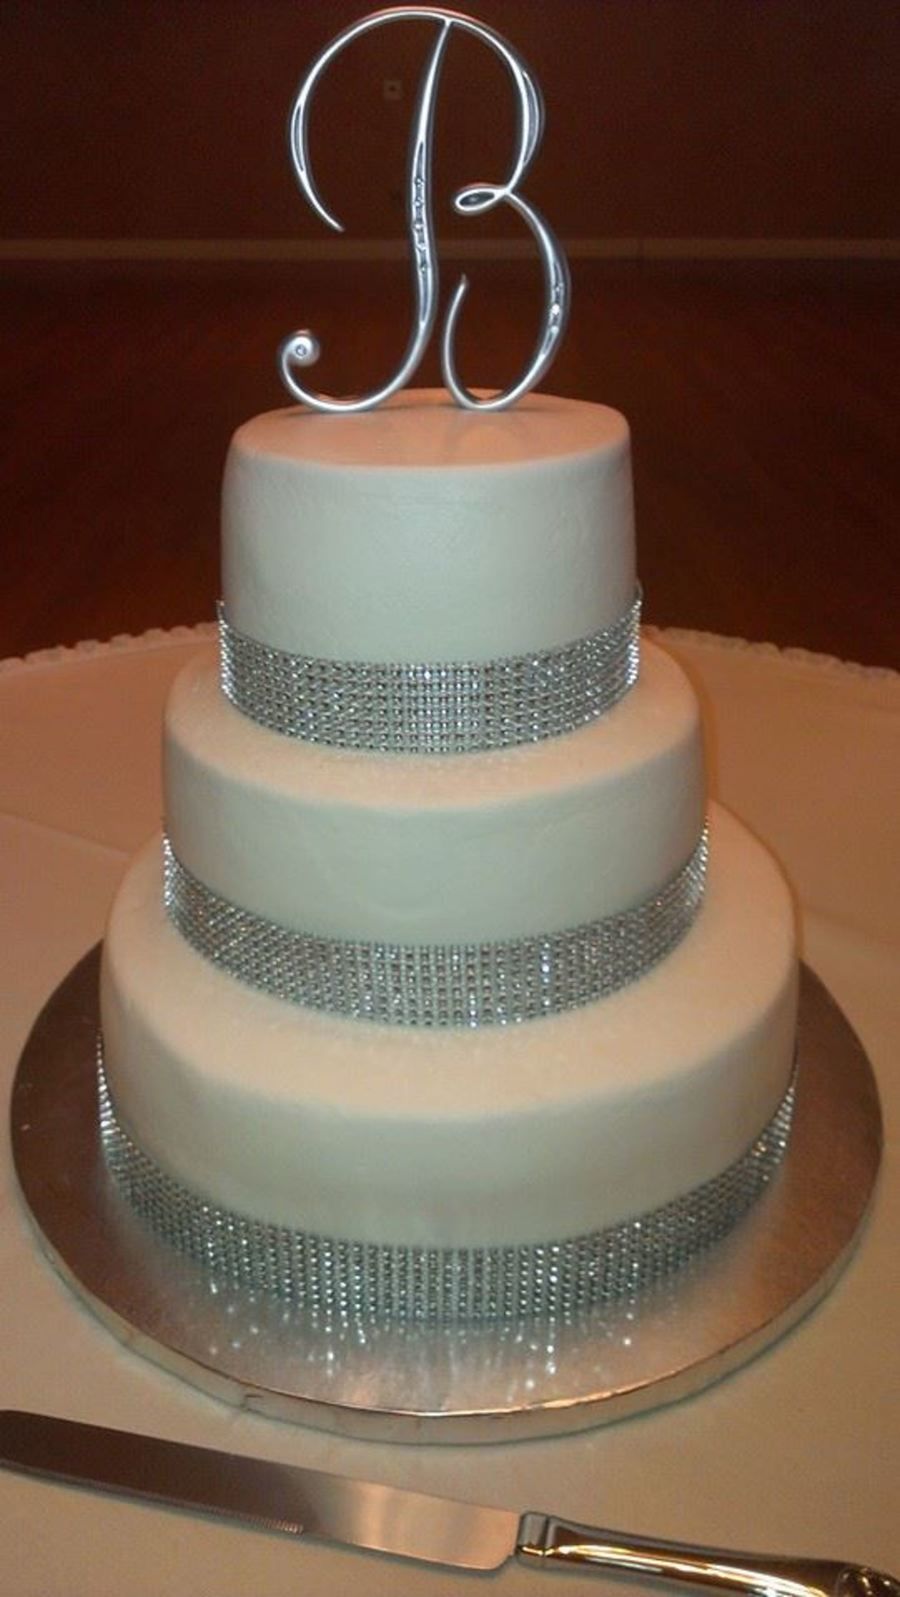 Simple White And Silver Wedding Cake All Bc - CakeCentral.com